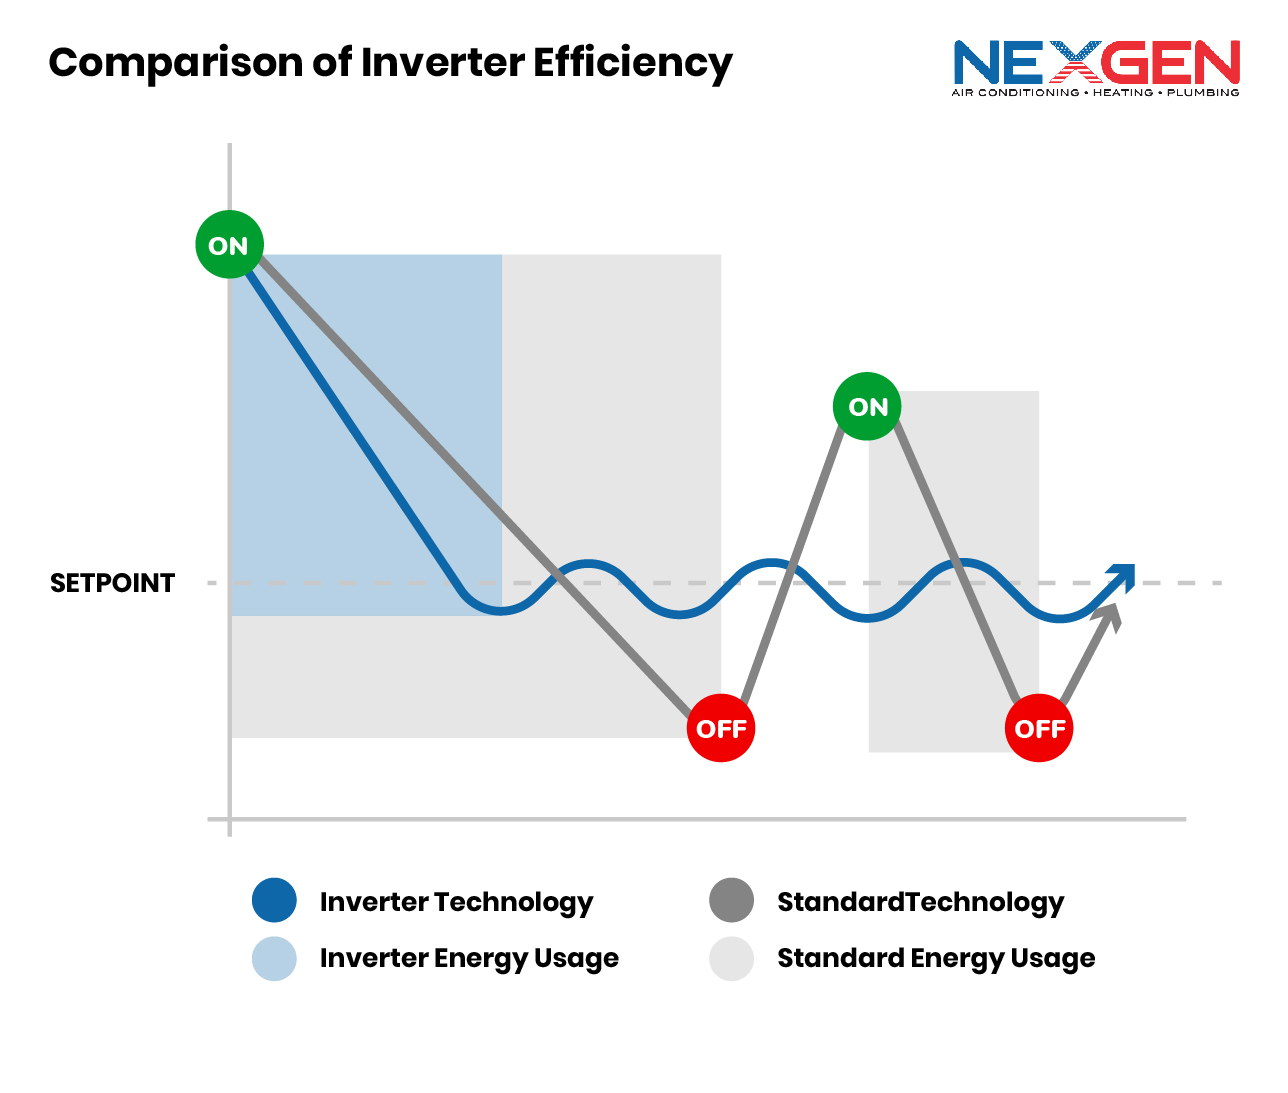 Comparison of Inverter Efficiency Graphic